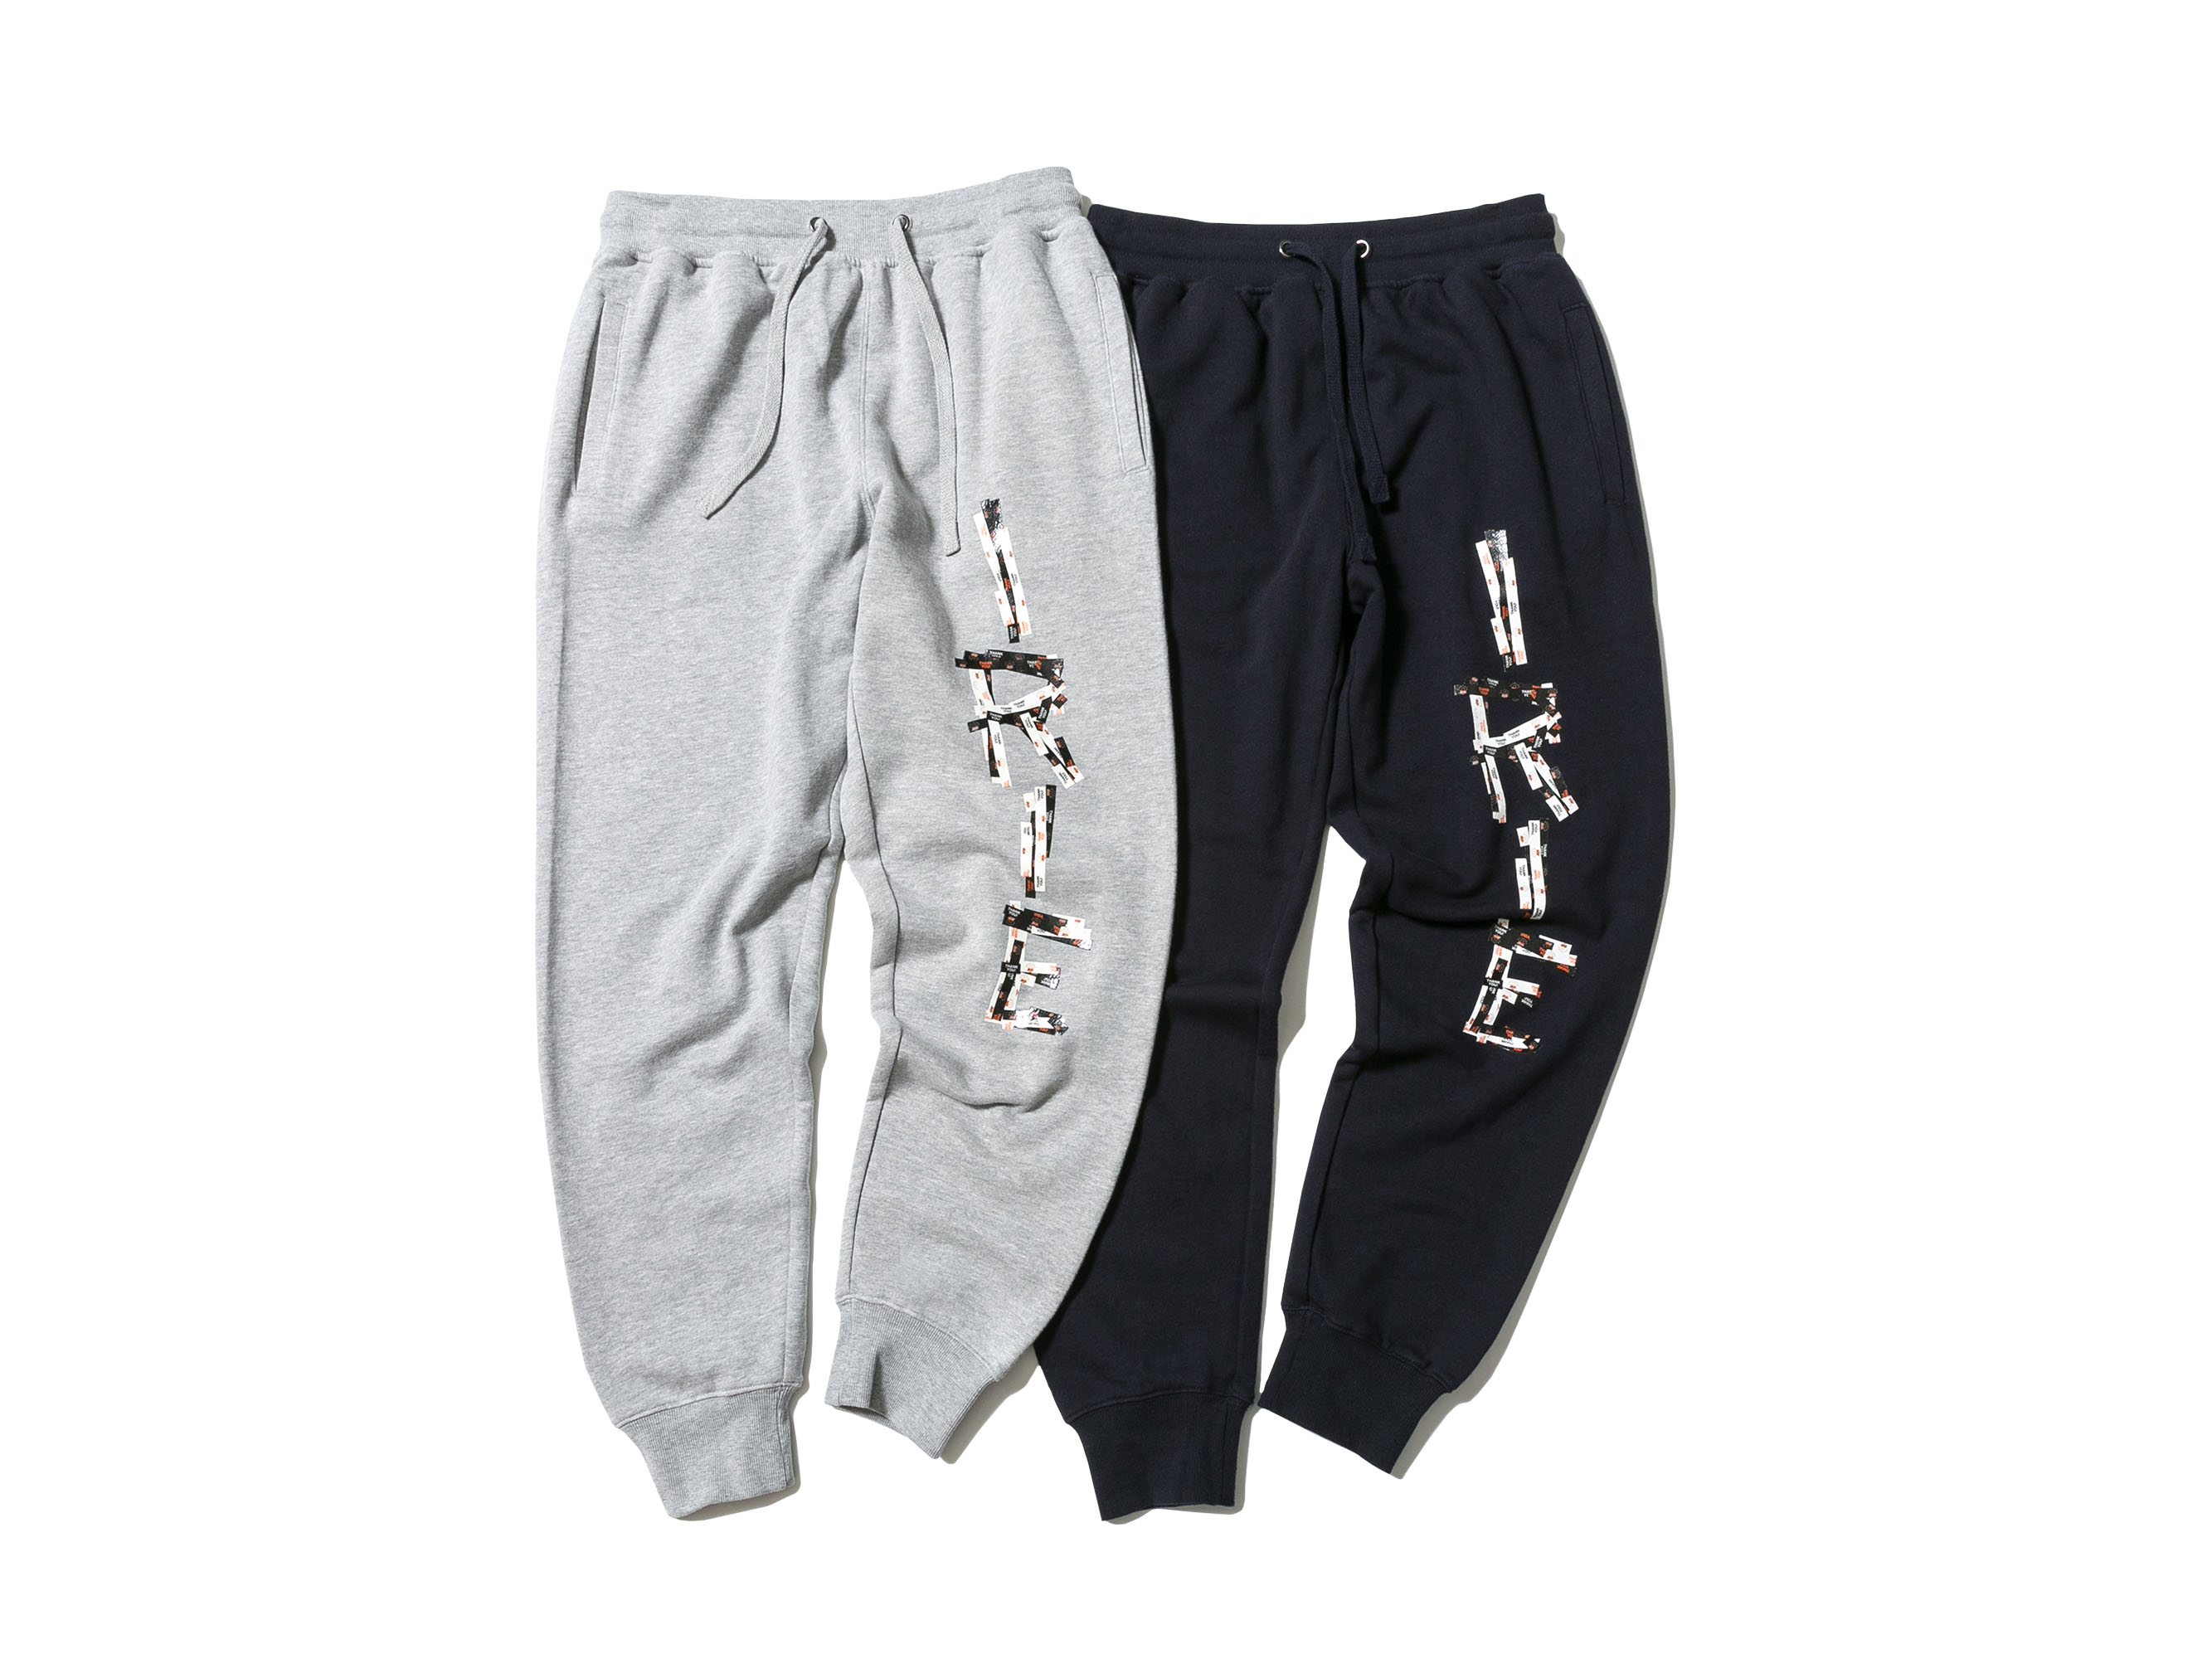 【20% OFF】IRIE STORE TAPE SWEAT PANTS - IRIE by irielife